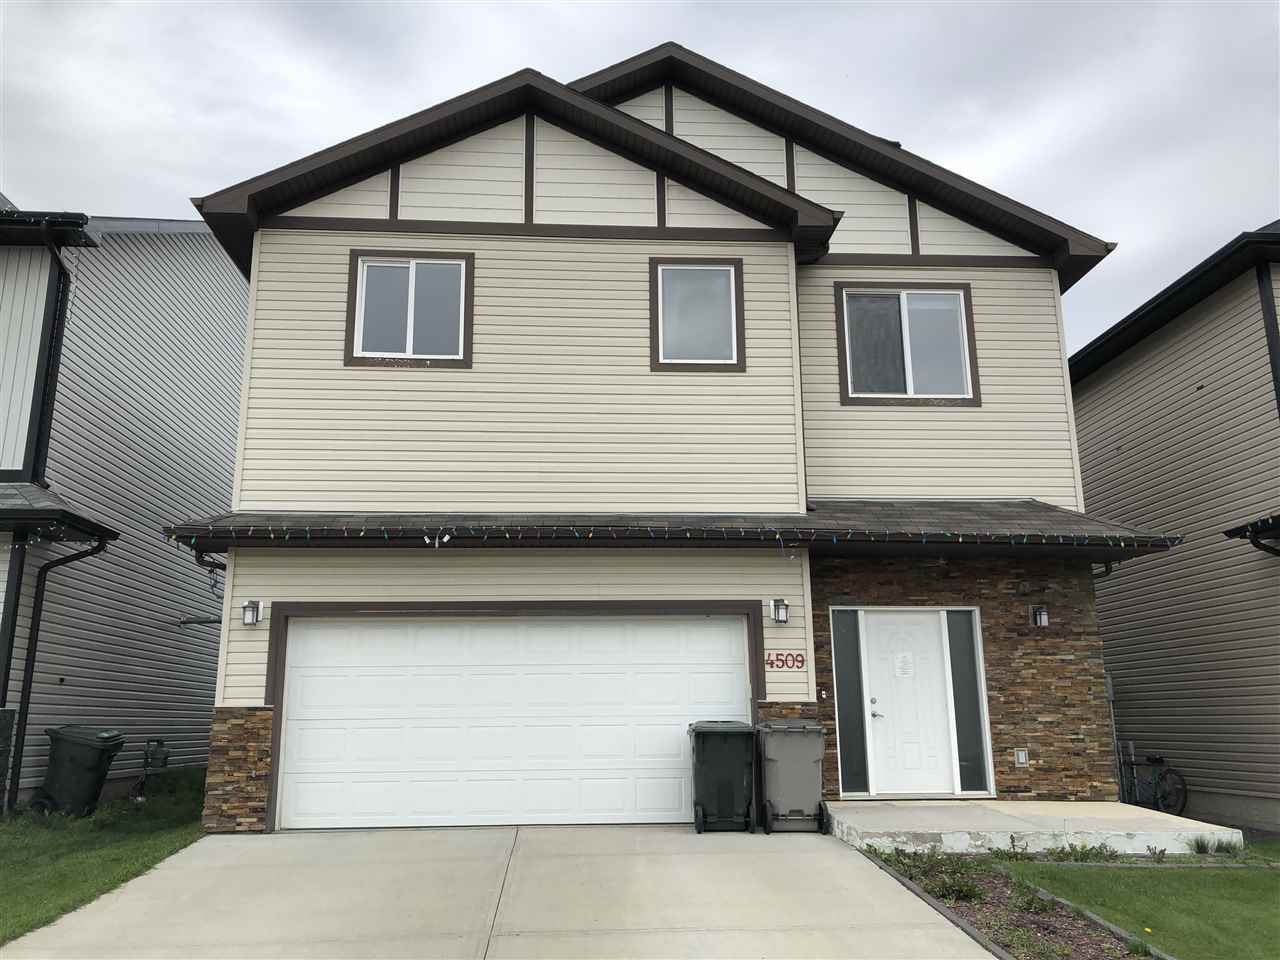 MLS® listing #E4171032 for sale located at 4509 41 Avenue